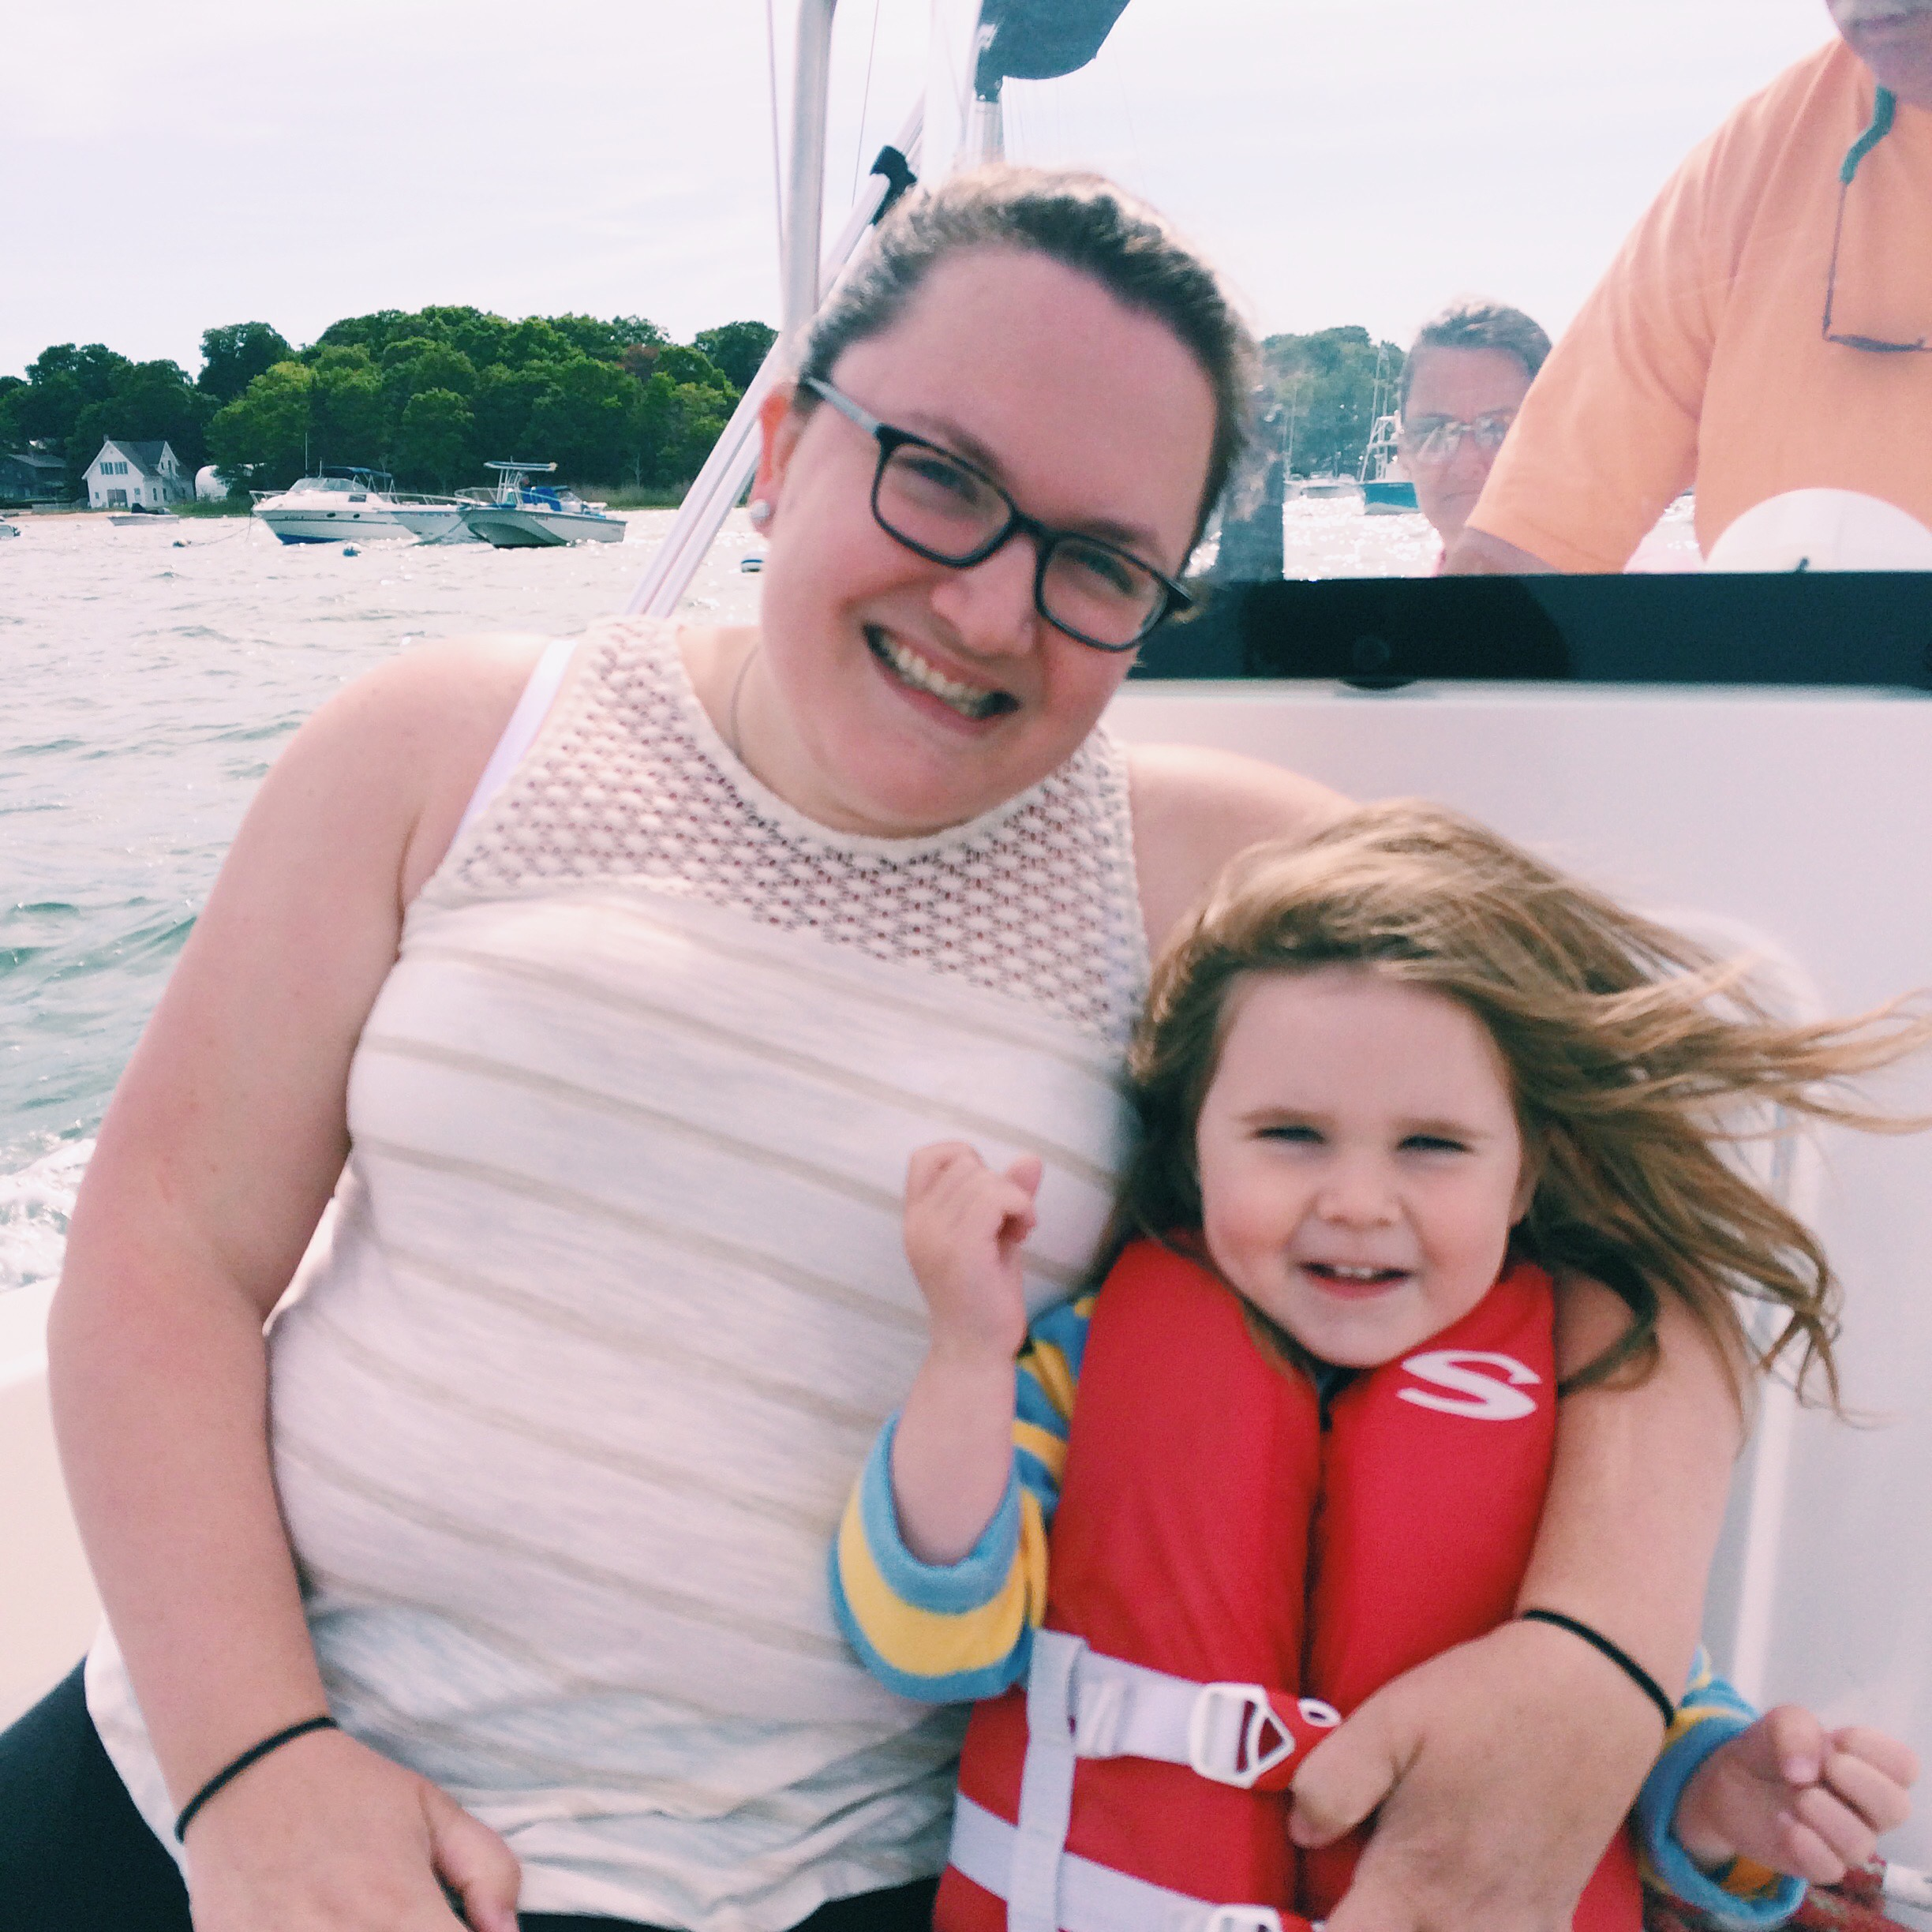 Late afternoon cruise on Papa's boat in Duxbury Harbor.